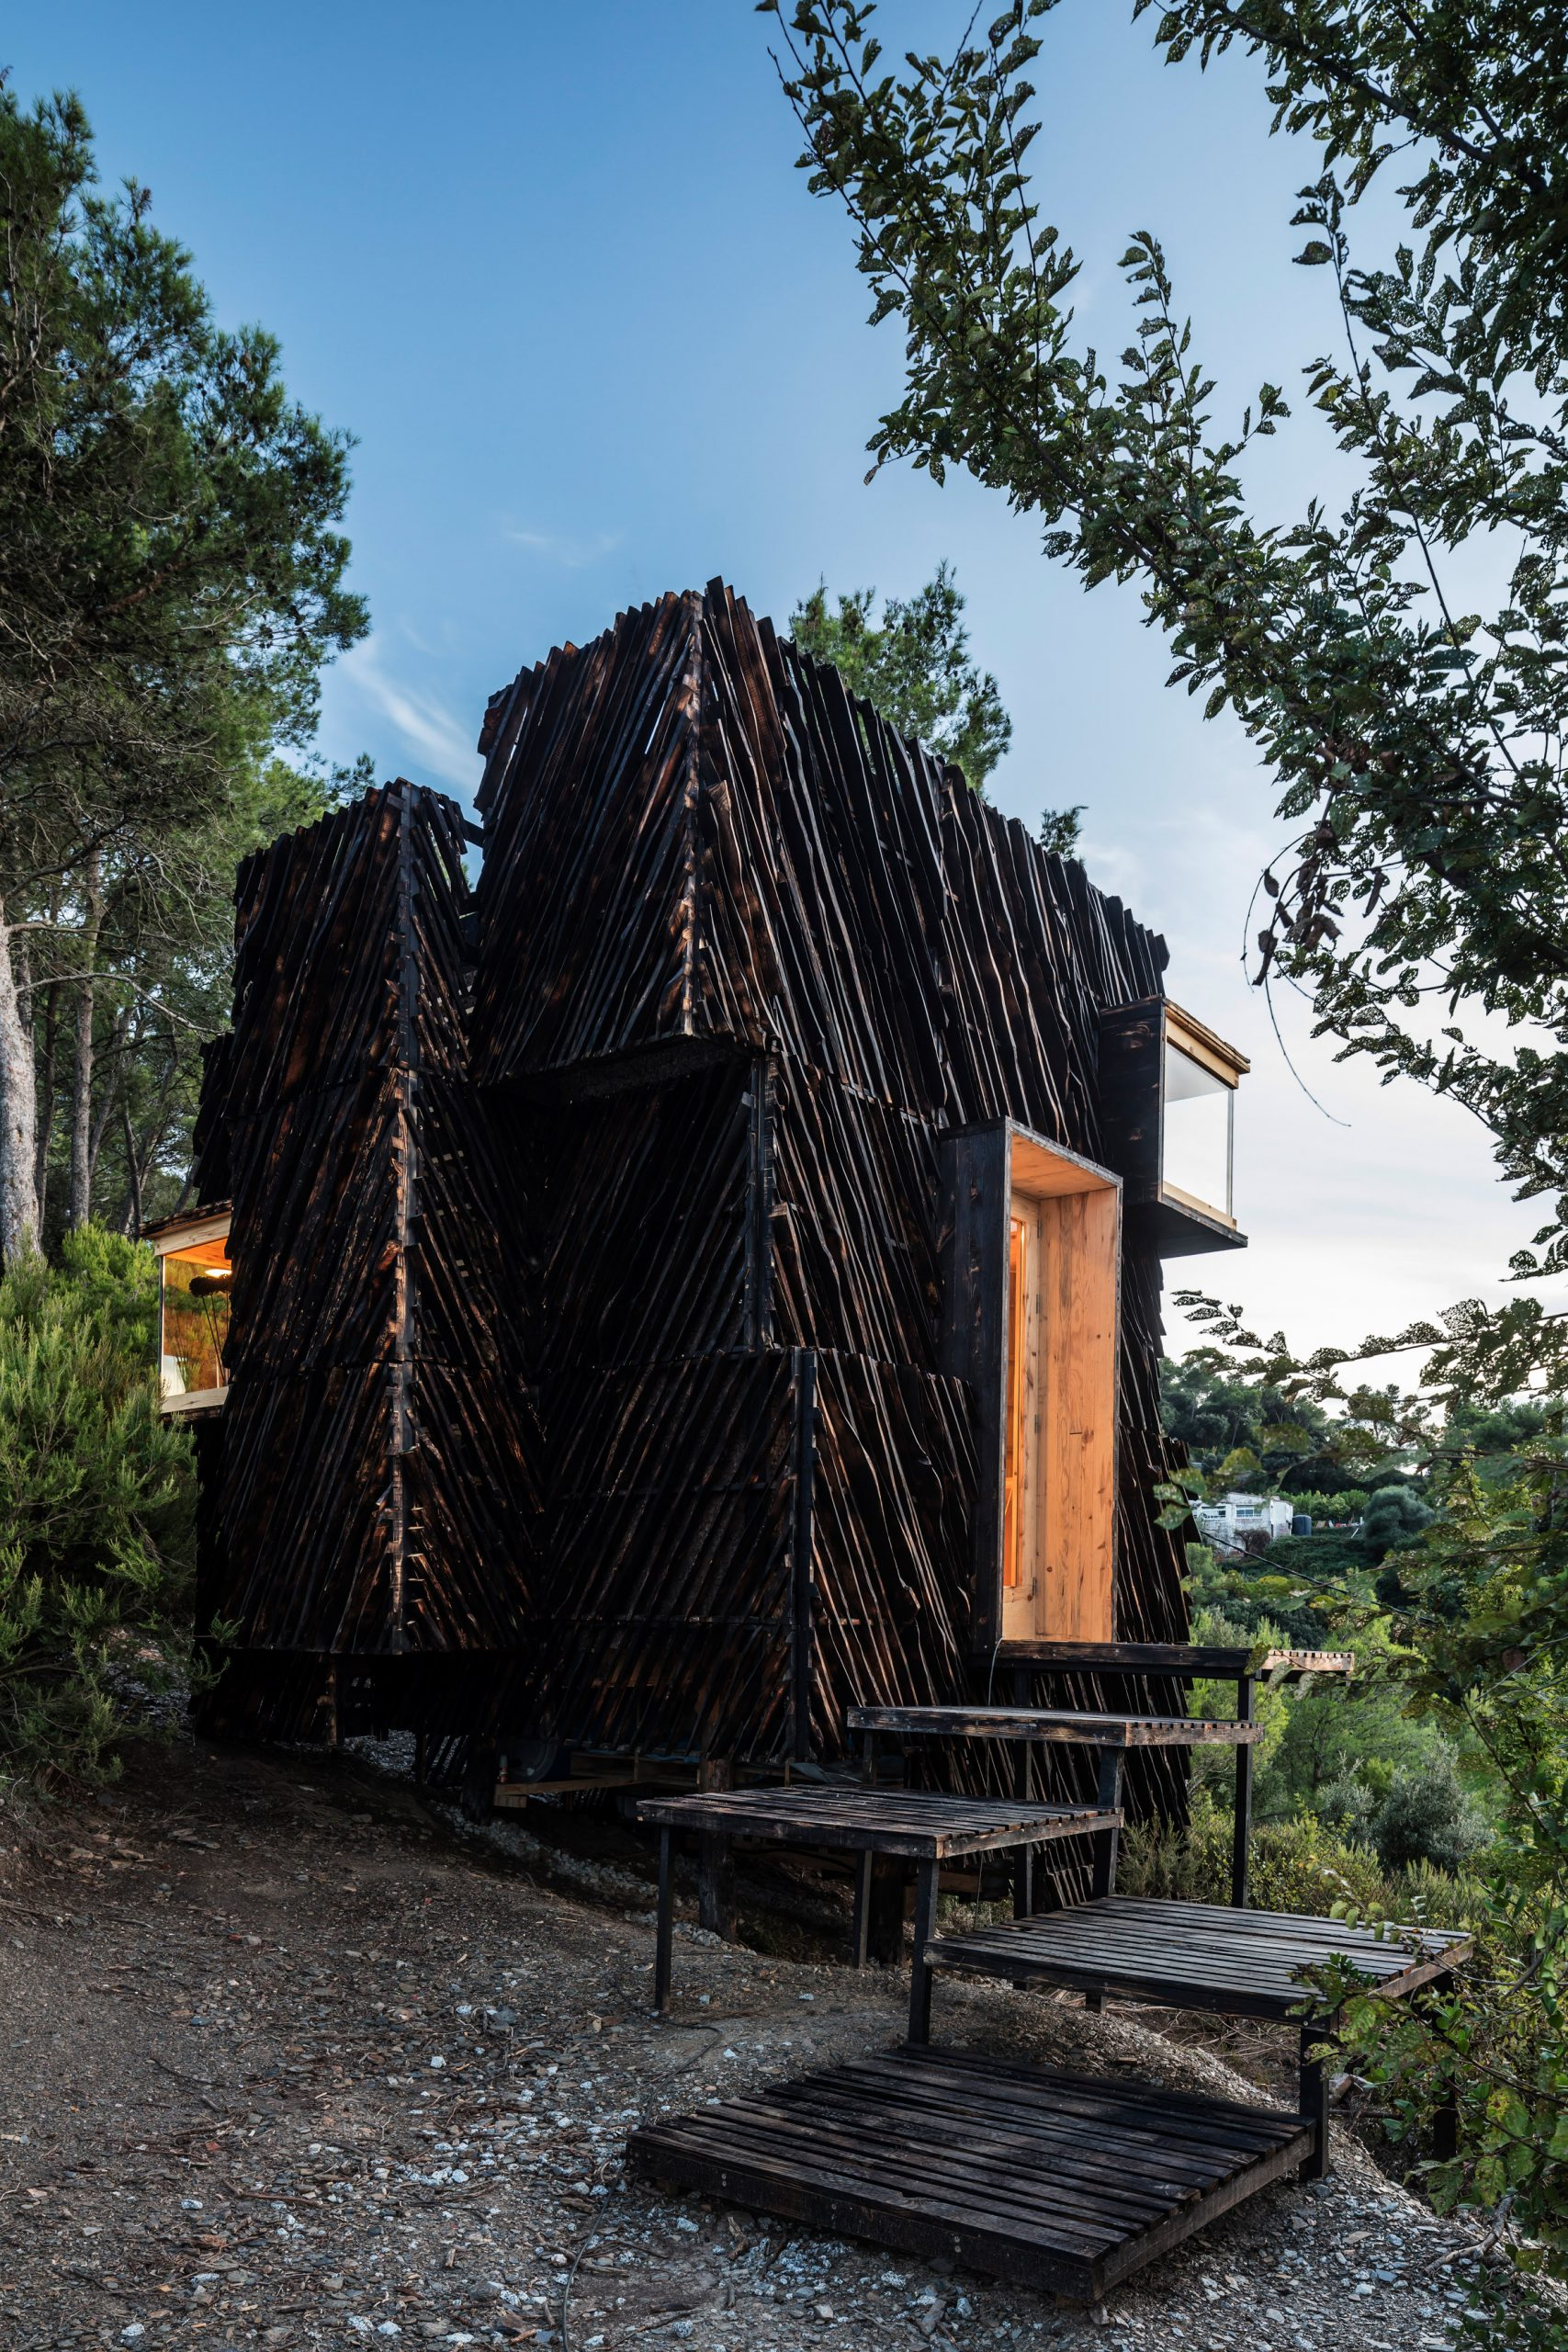 A cabin clad in charred timber